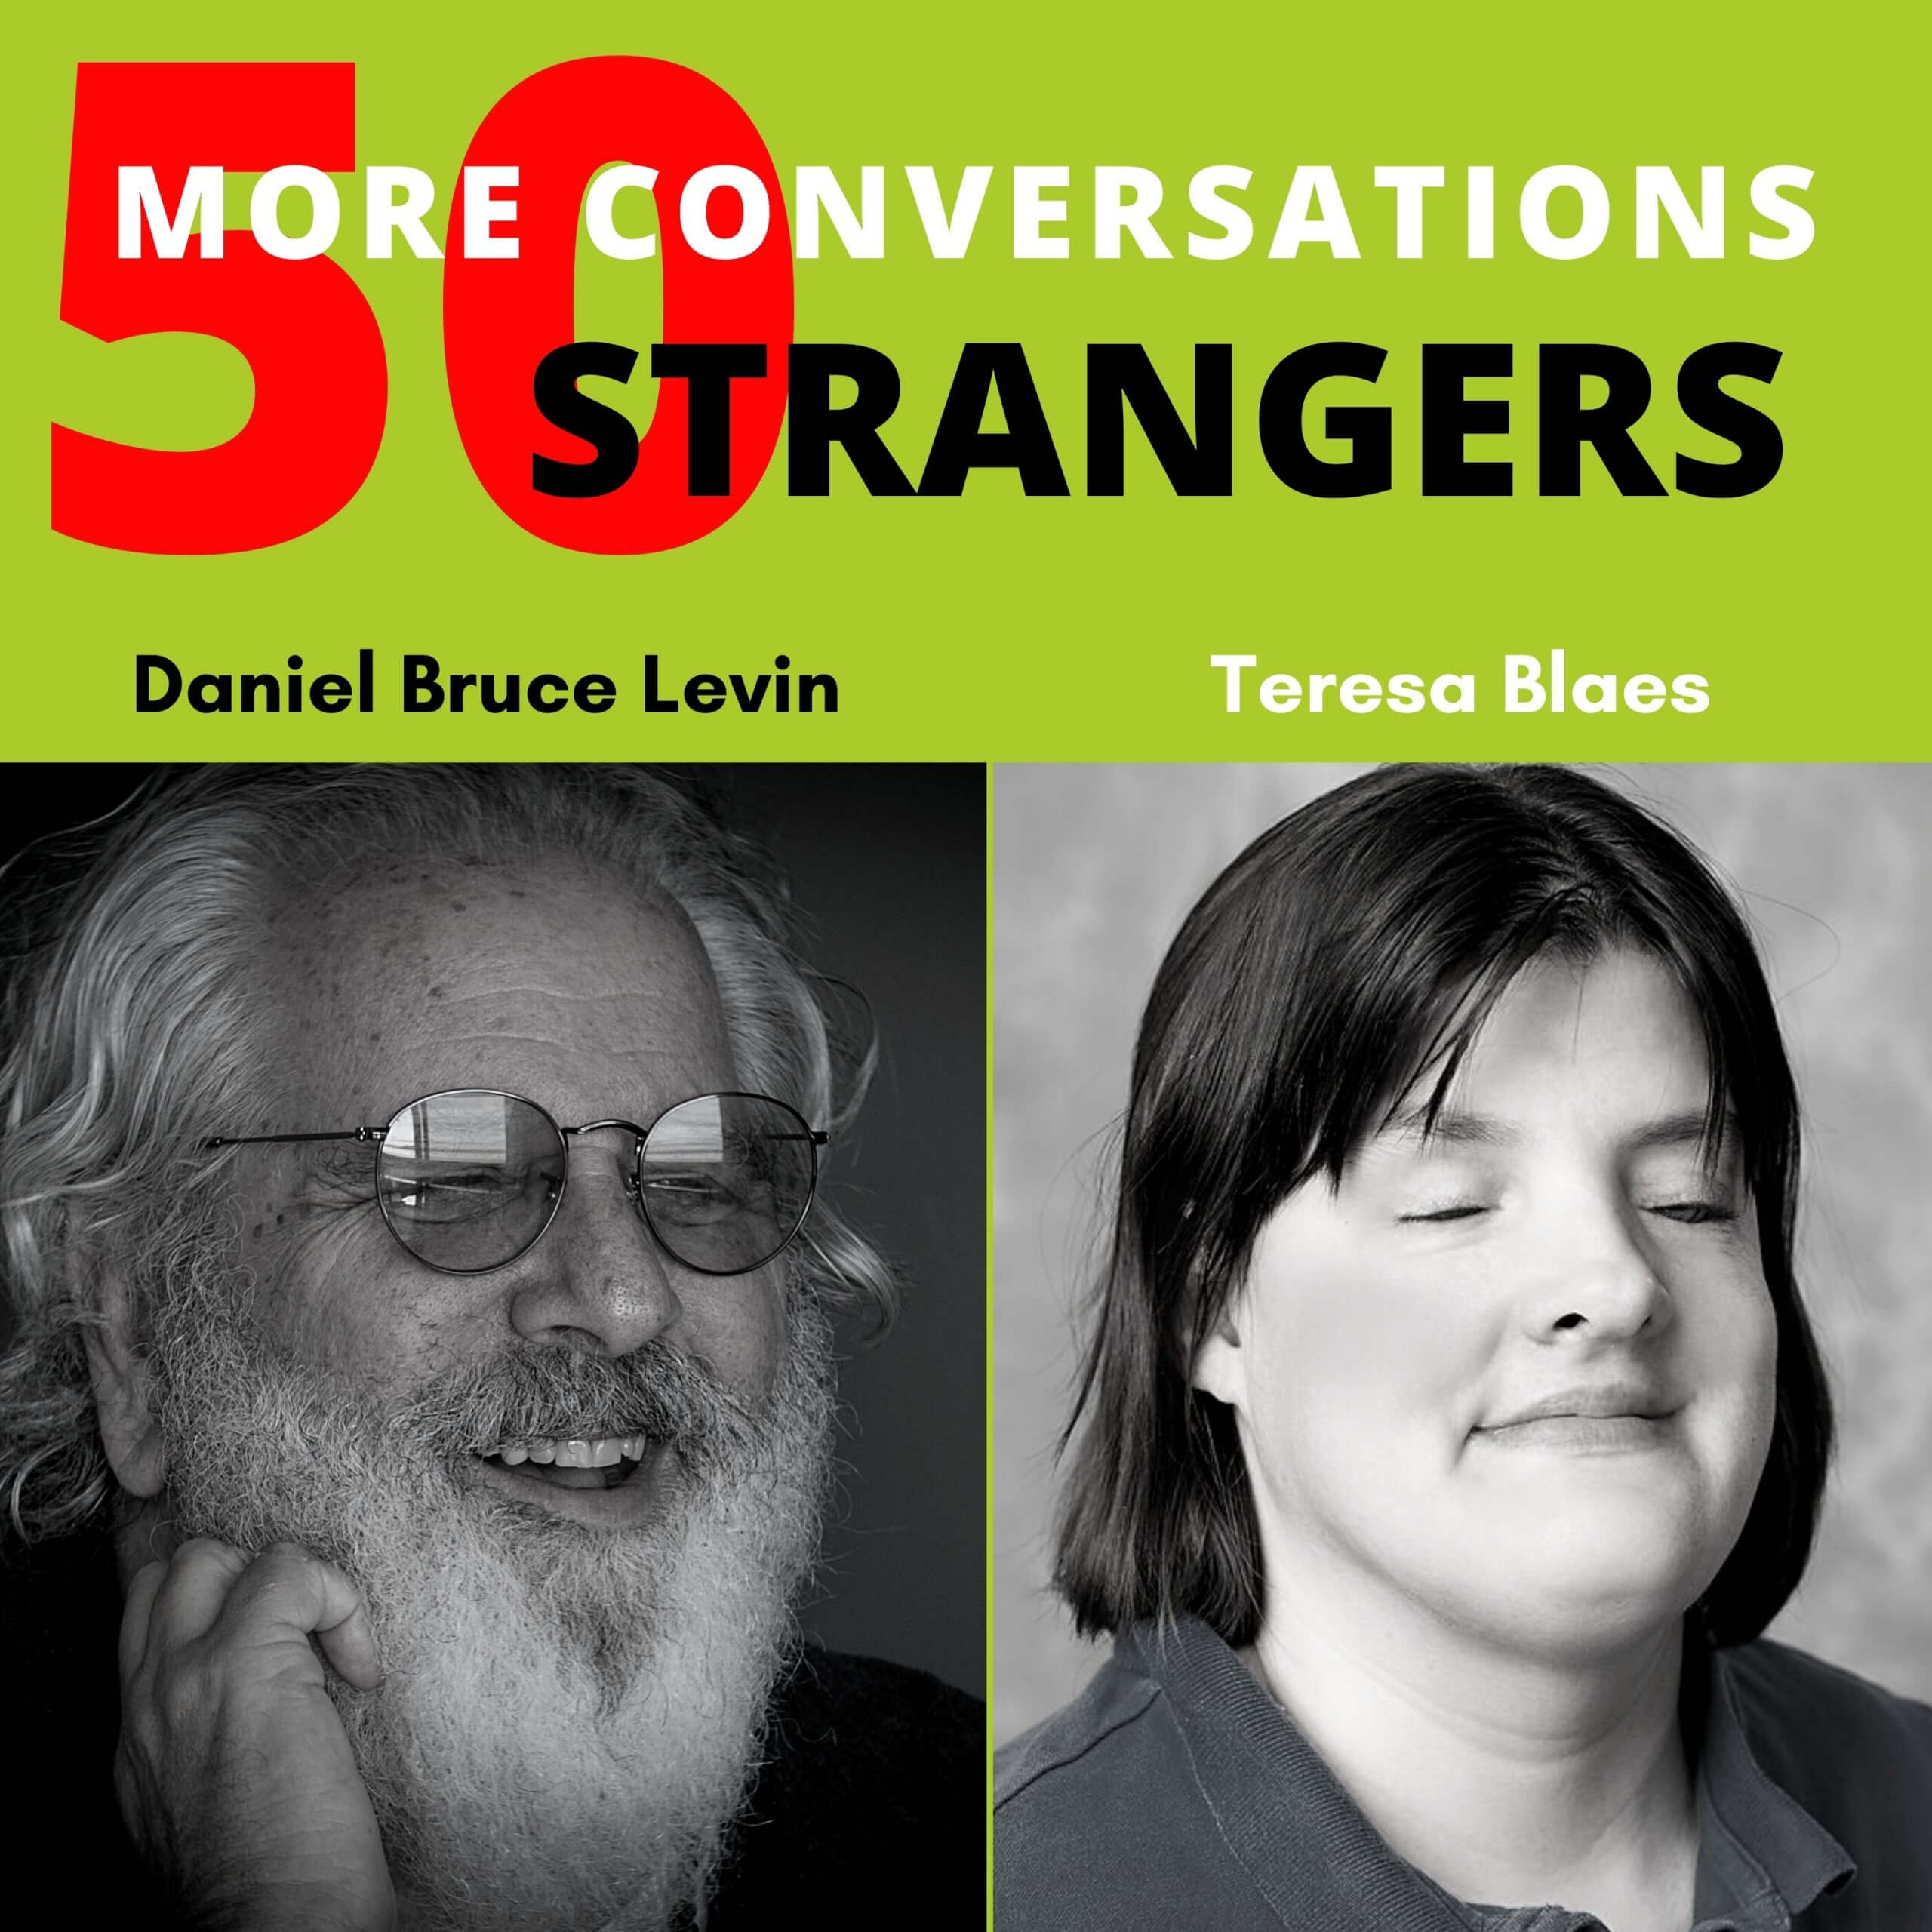 50 More Conversations with 50 More Strangers with Teresa Blaes